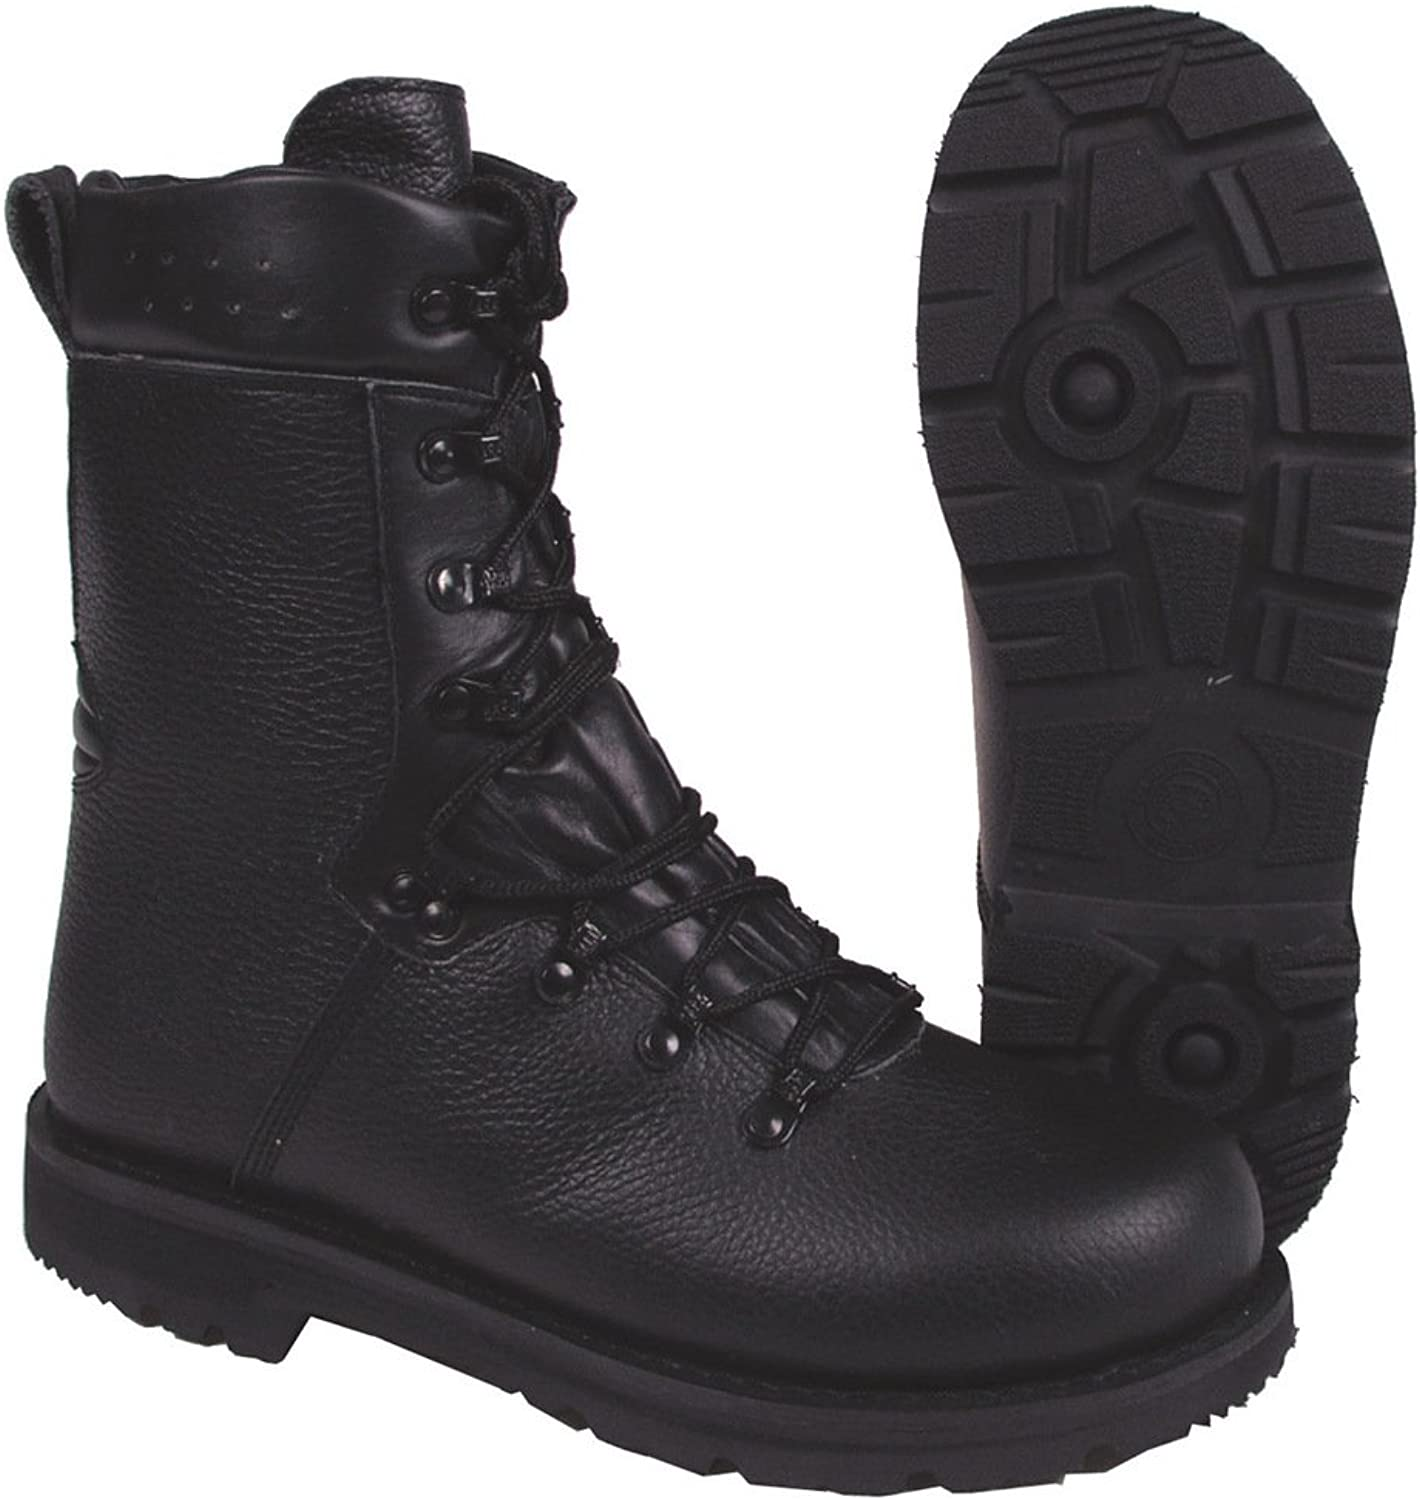 MFH Leather Boots T2000 of German Armed Forces